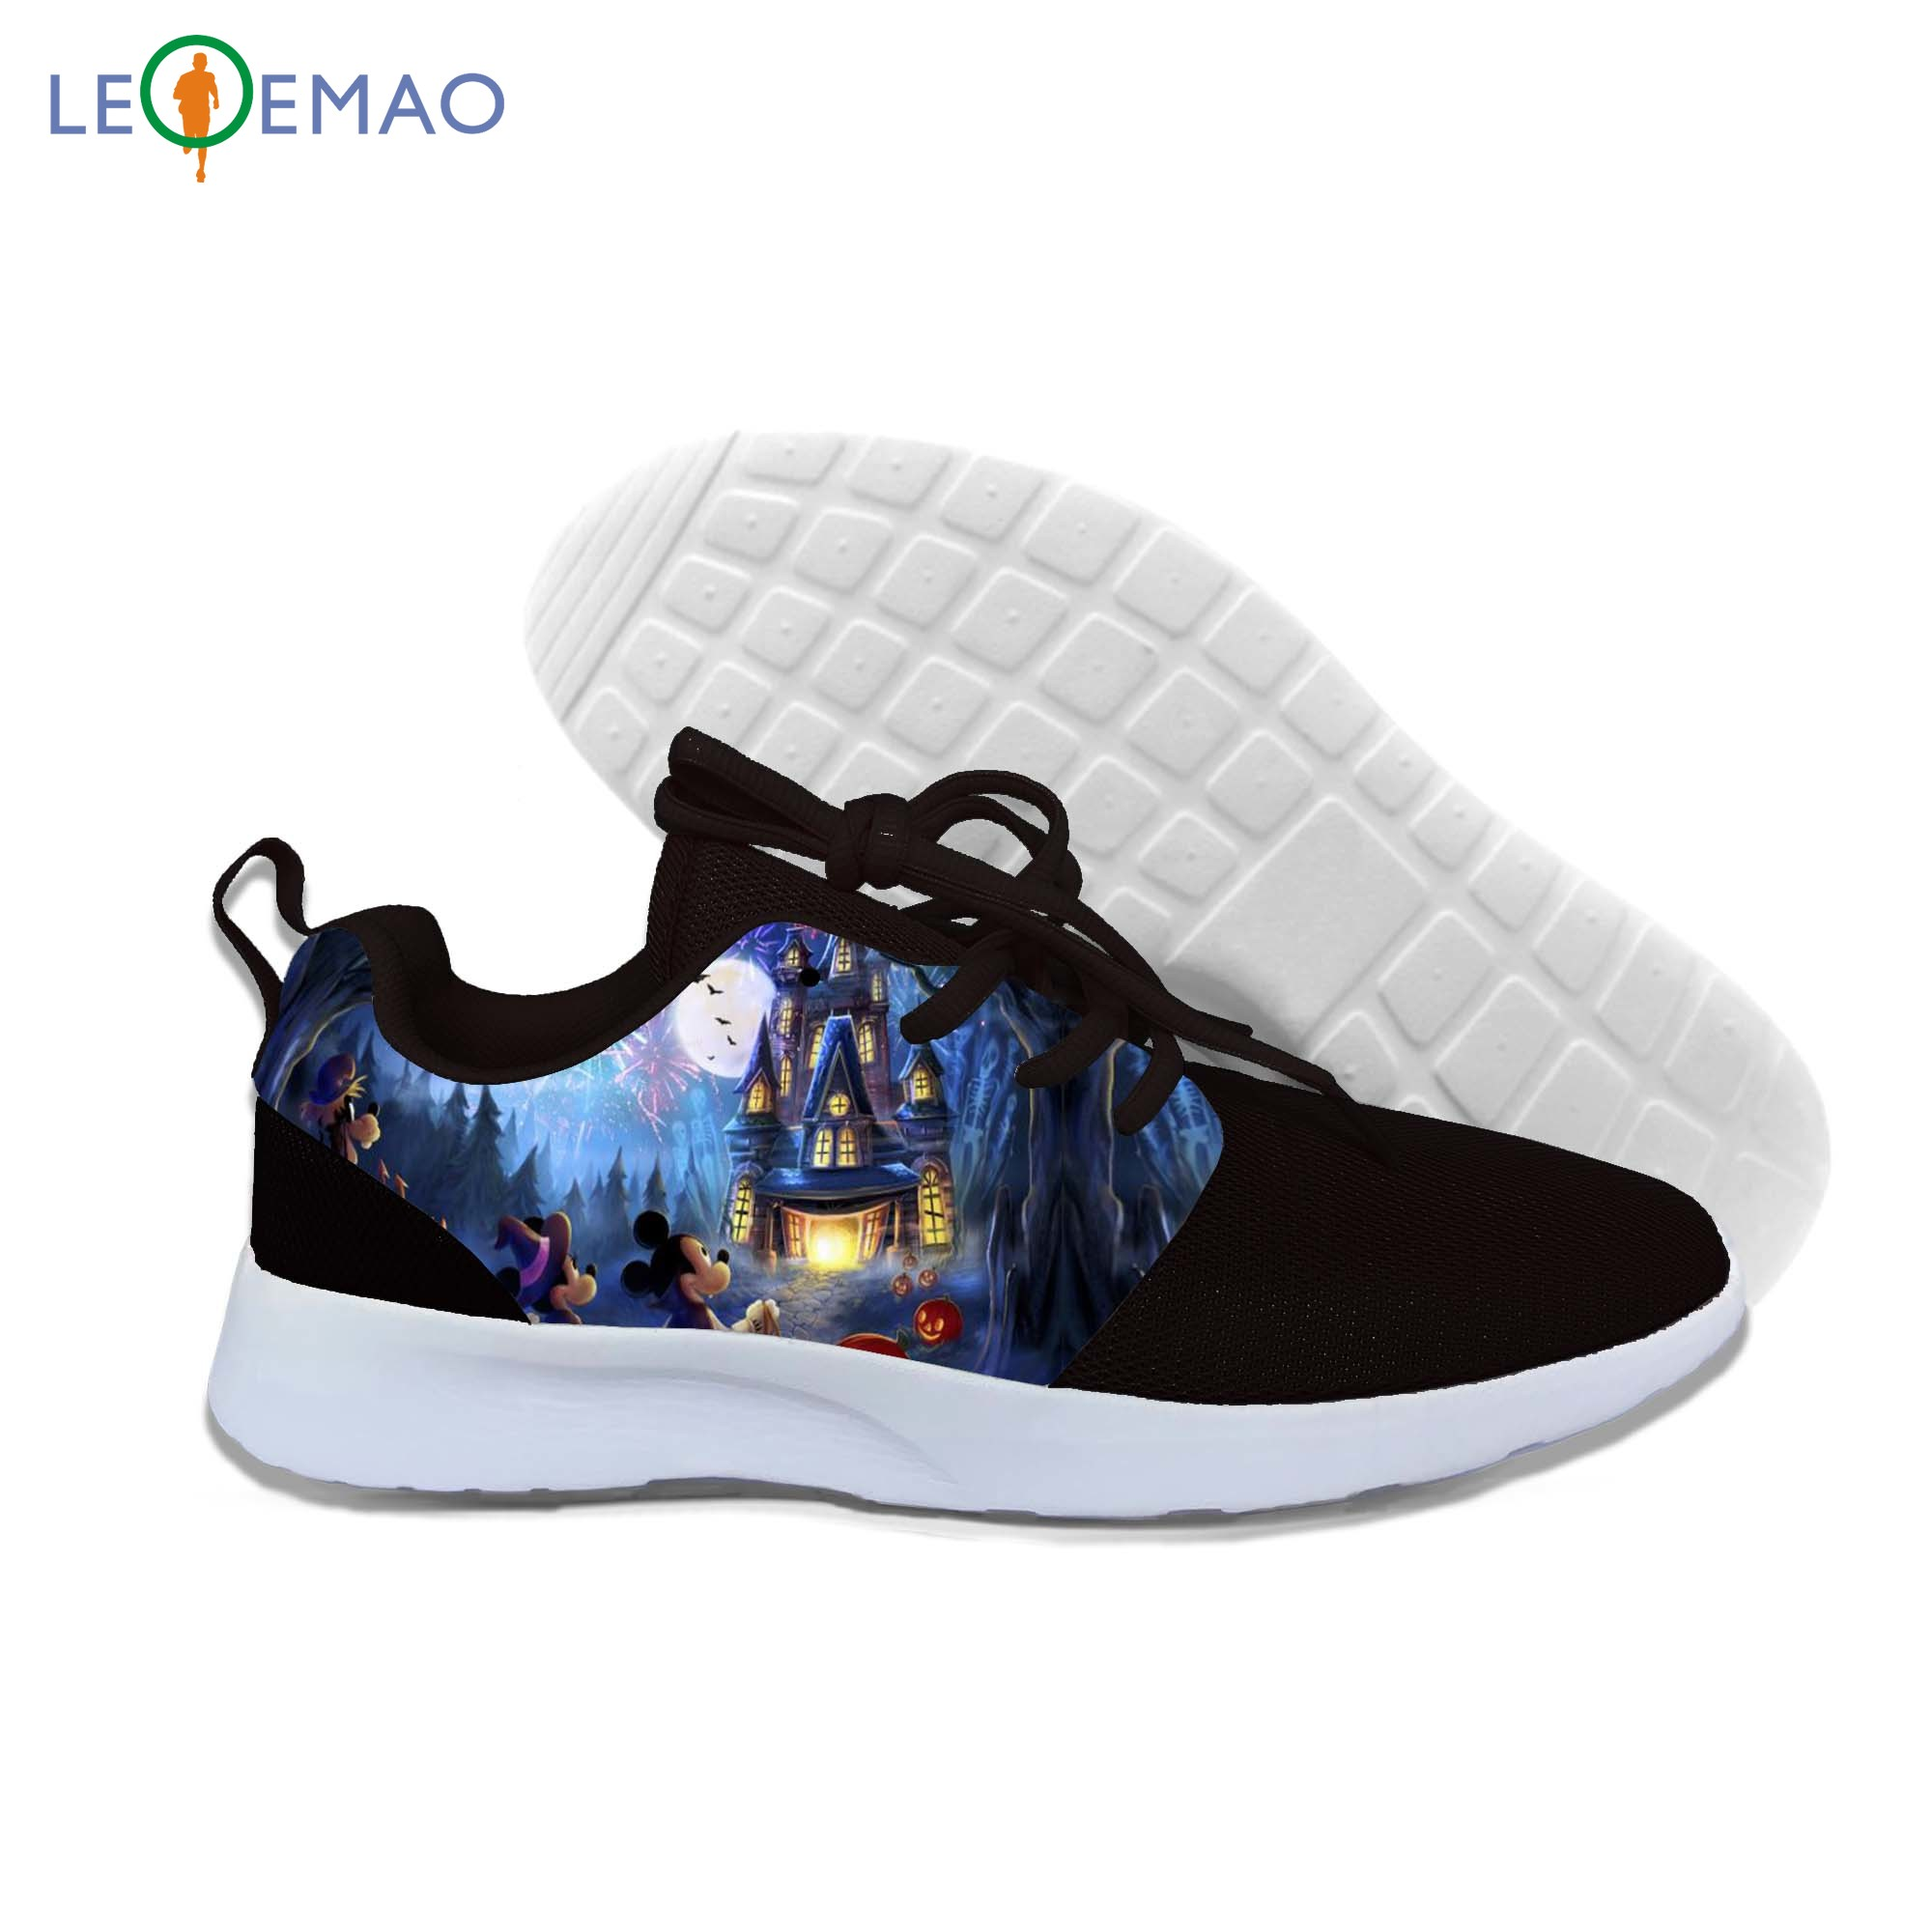 Personality Running Shoes Cool Scary Halloween Women Men Summer All Hallows' Day Shoes Walking Lace-Up Gym Casual Sneaker image